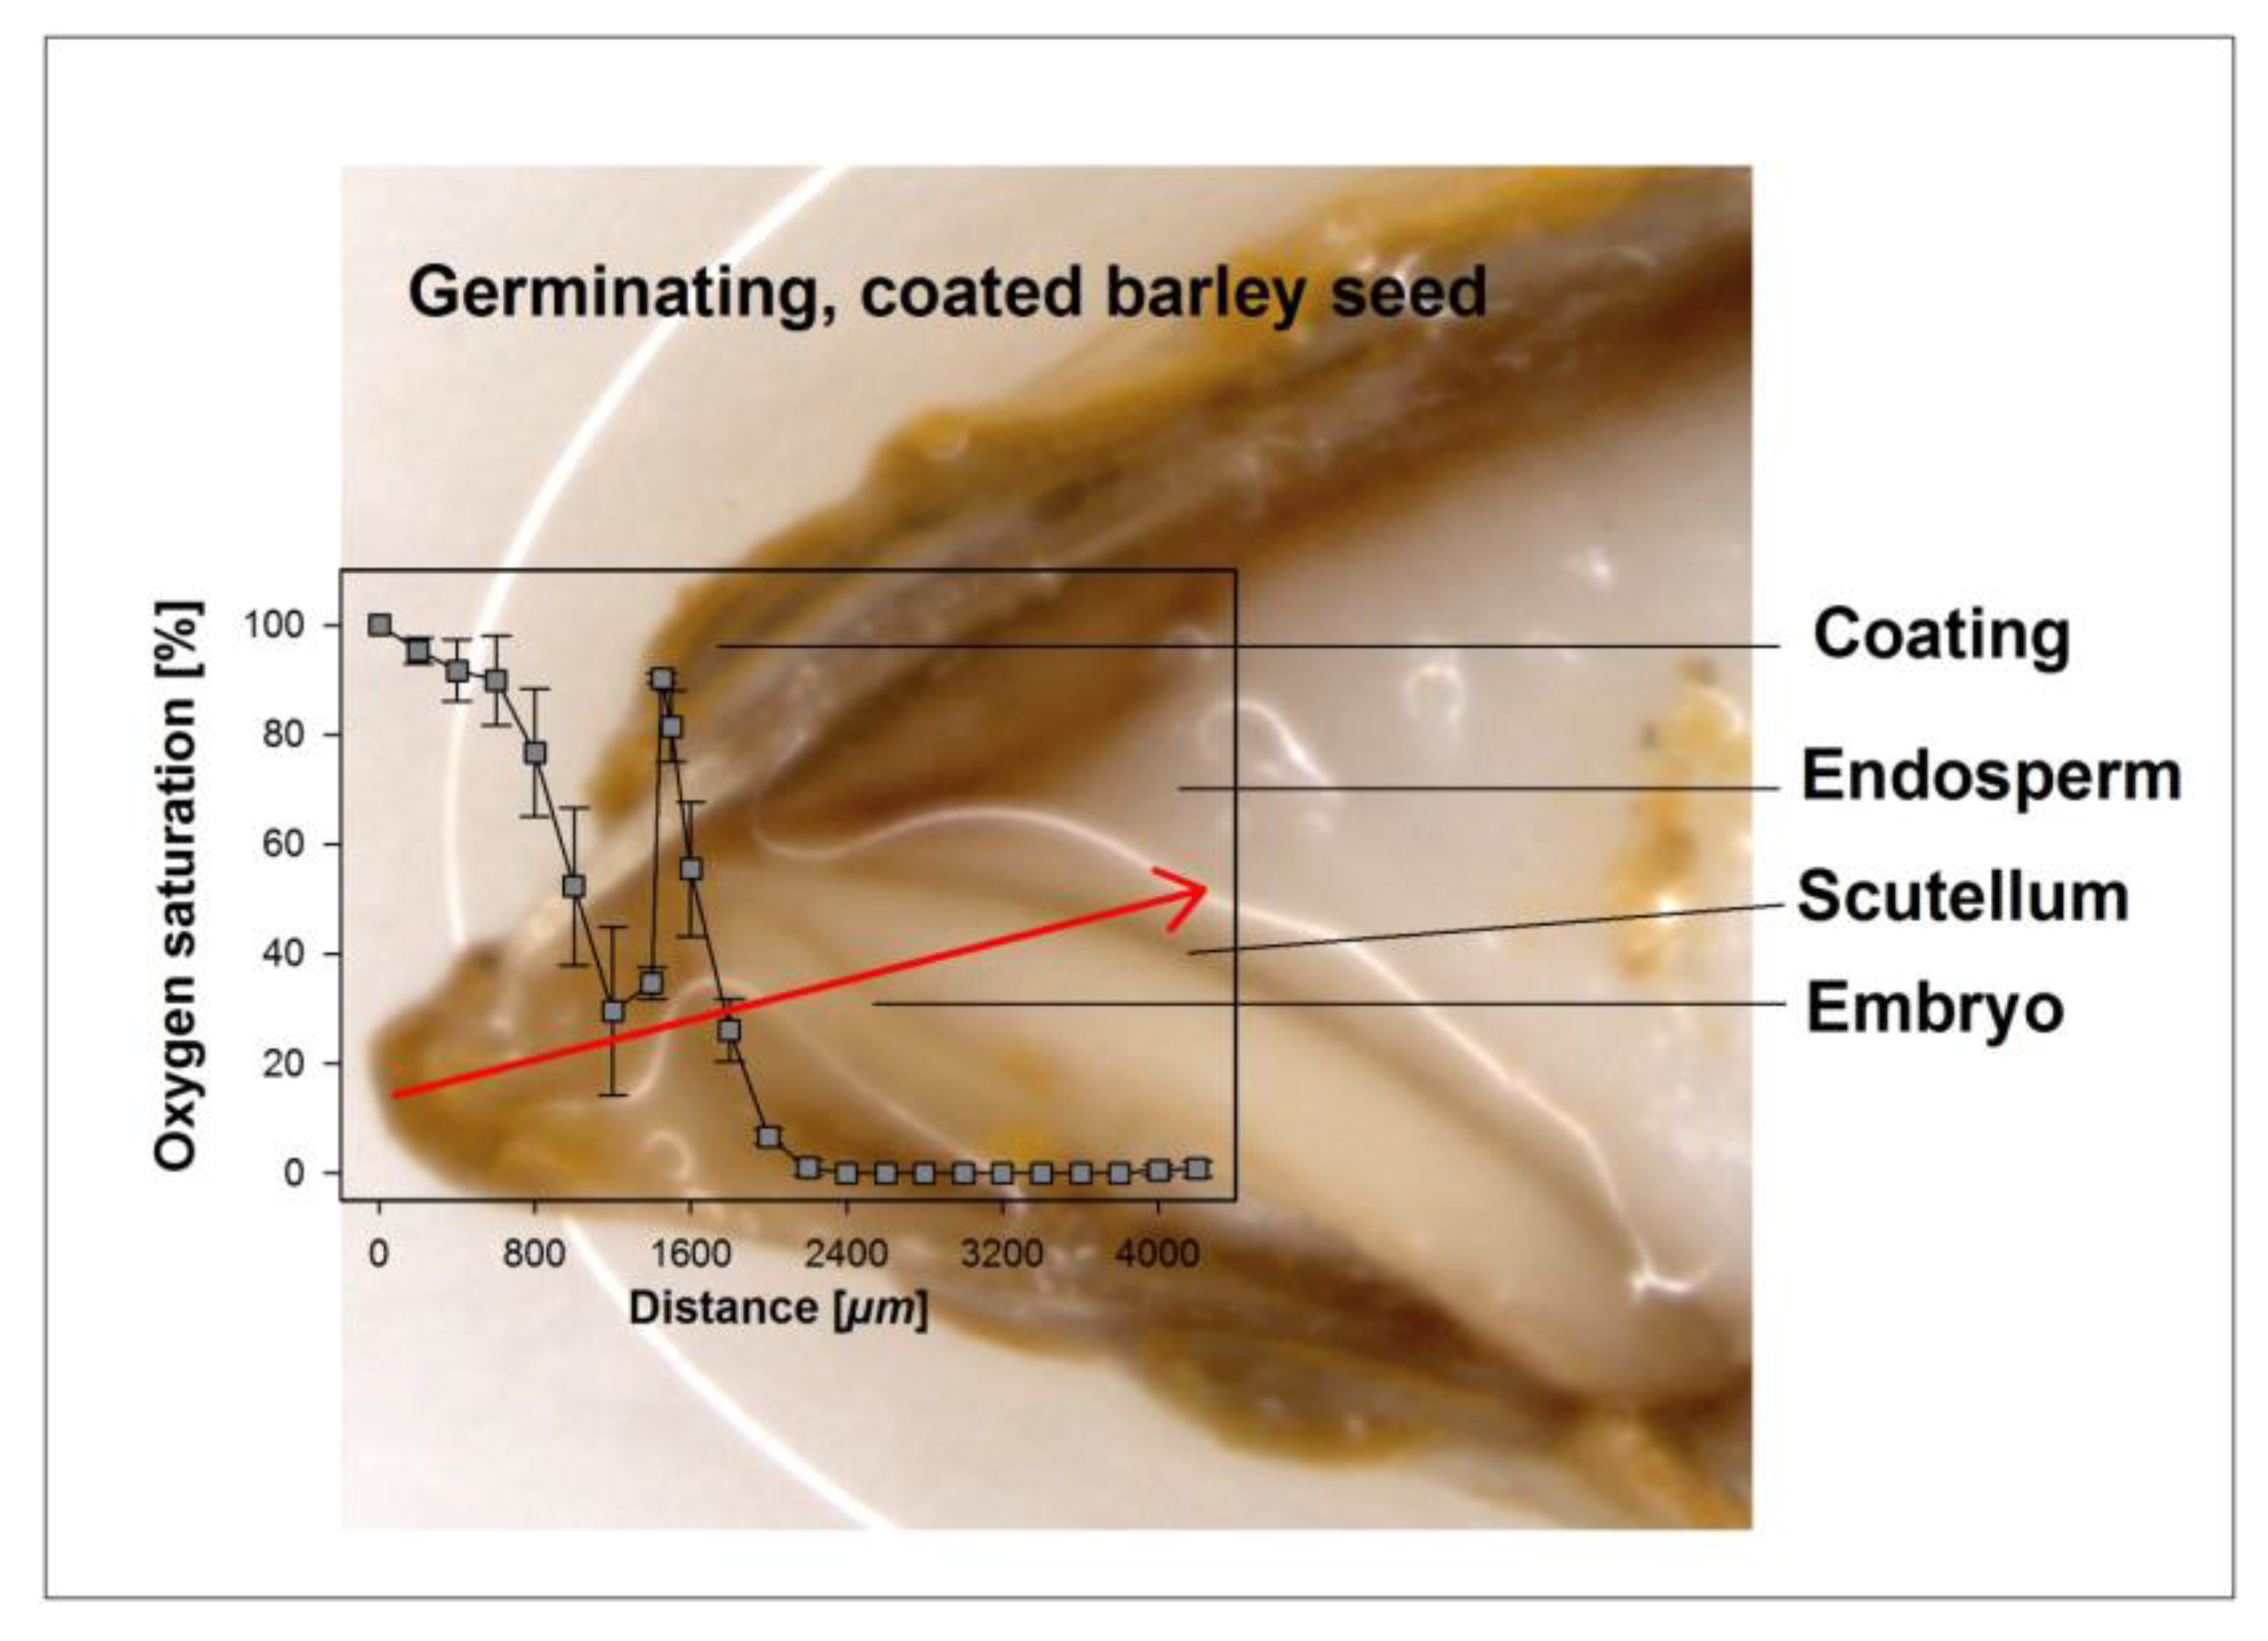 Biology Free Full Text Seed Coating Increases Moisture Germination Diagram It Works From No